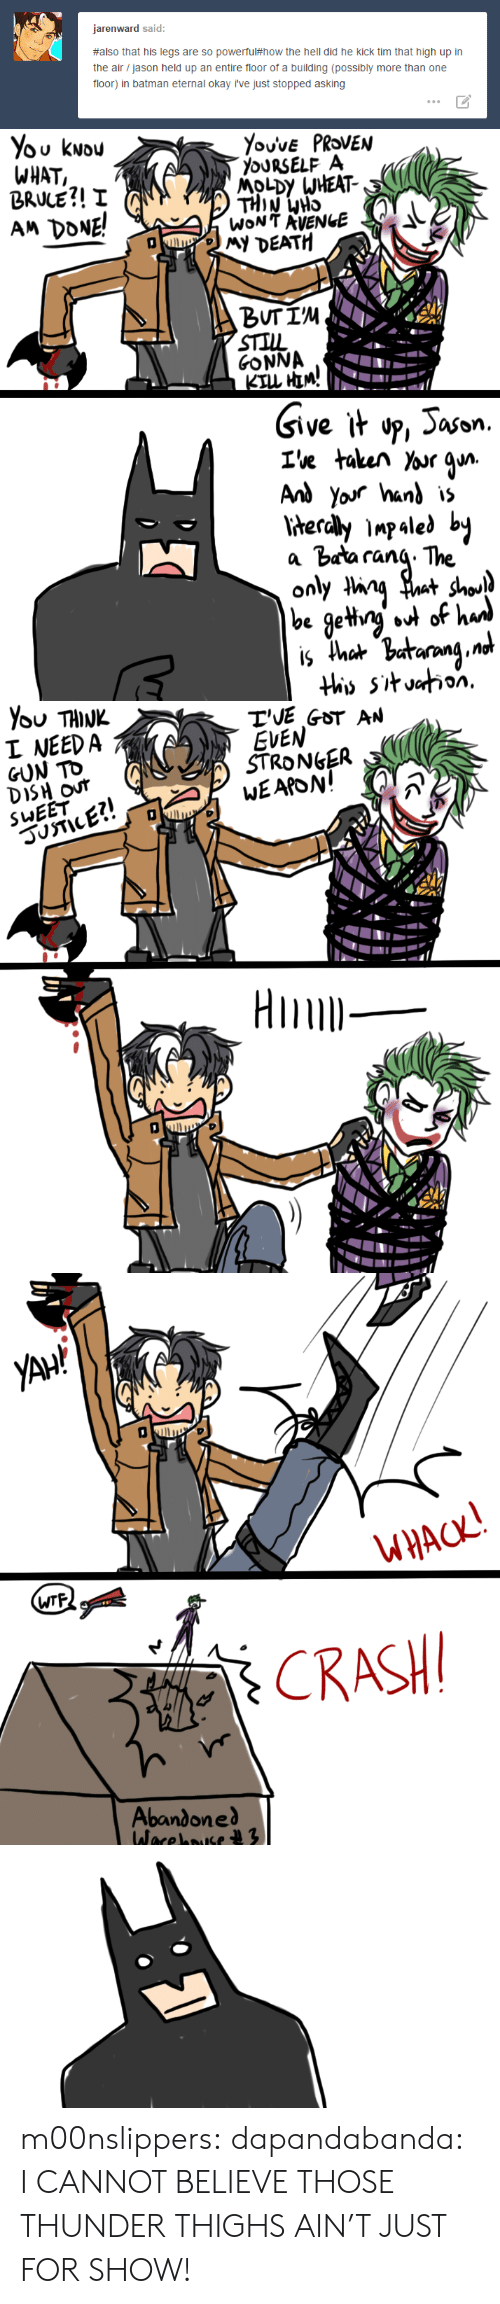 Batman, Target, and Tumblr: jarenward said:  #also that his legs are so powerfu(#how the hell did he kick tim that high up in  the air / jason held up an entire floor of a building (possibly more than one  floor) in batman eternal okay i've just stopped asking   ou kwou  WHAT  BRWE引!  AM DONE!  oURSELF A  MOLDY WHEAT-  DEATH  STIL  GONNA  Give it o,ason.  a barana. The  on   TVE GOT AN  EVEN  I NEED A  STRONGER  DiSH our   WTF  Abandone m00nslippers: dapandabanda: I CANNOT BELIEVE THOSE THUNDER THIGHS AIN'T JUST FOR SHOW!